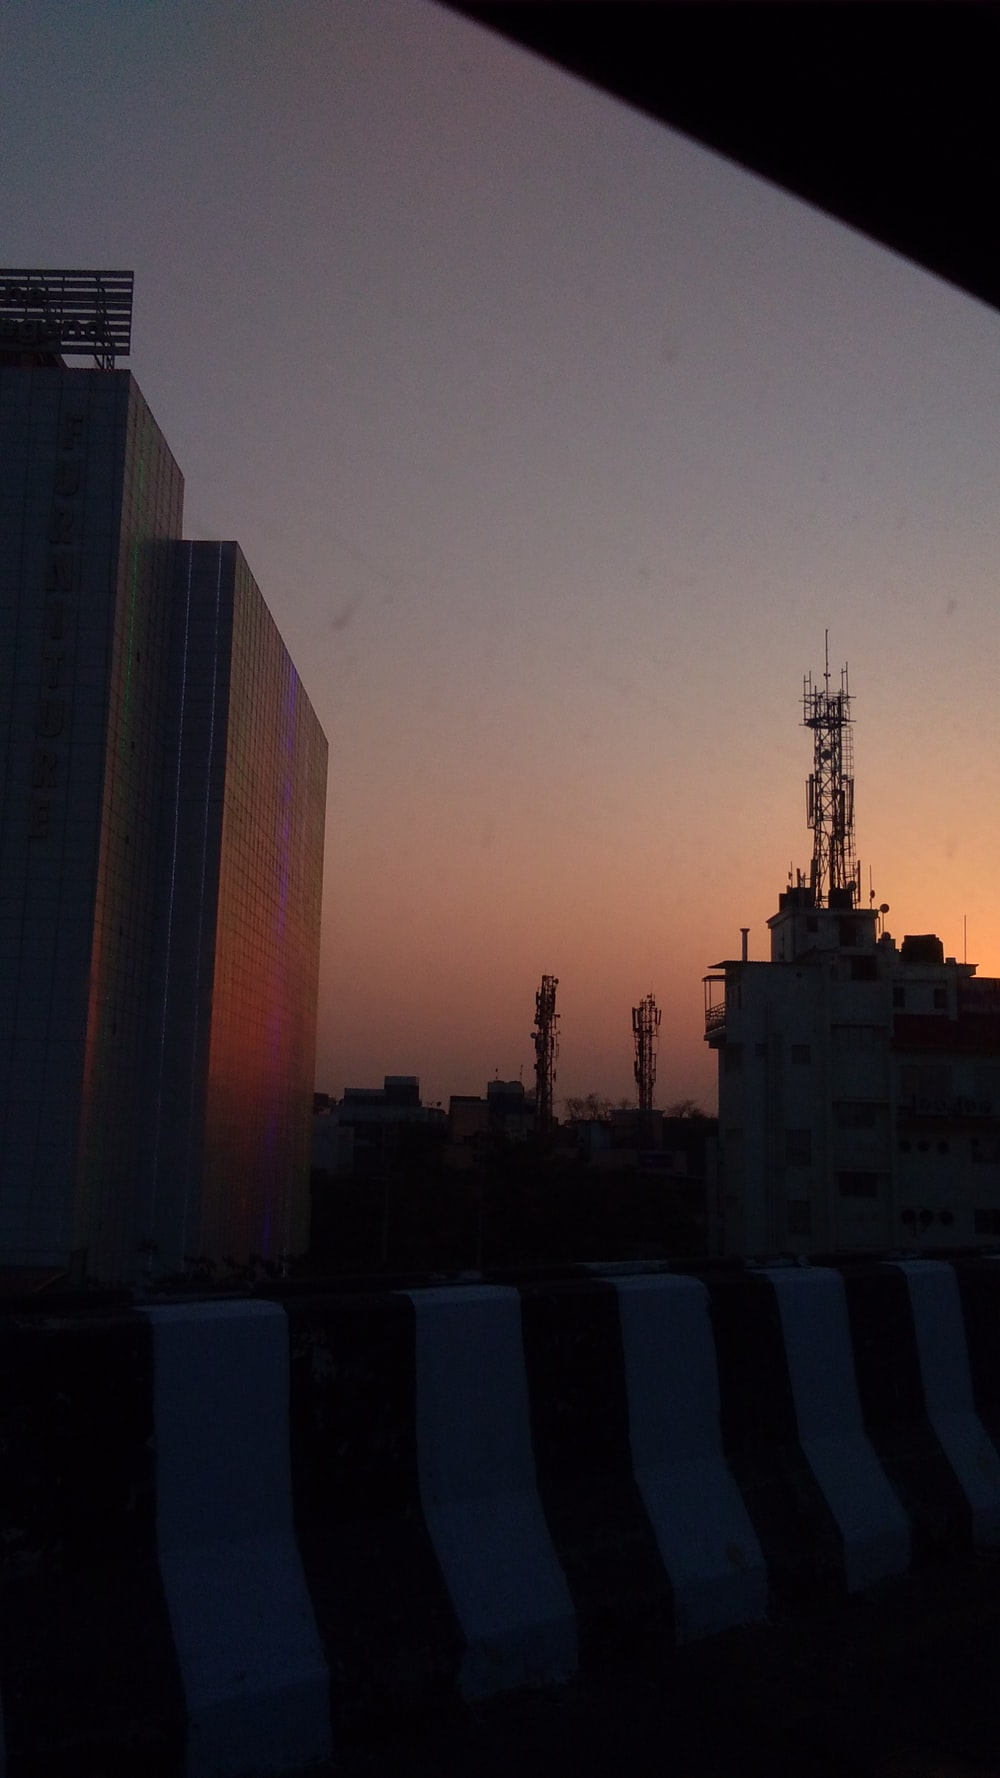 view of high-rise buildings during golden hour